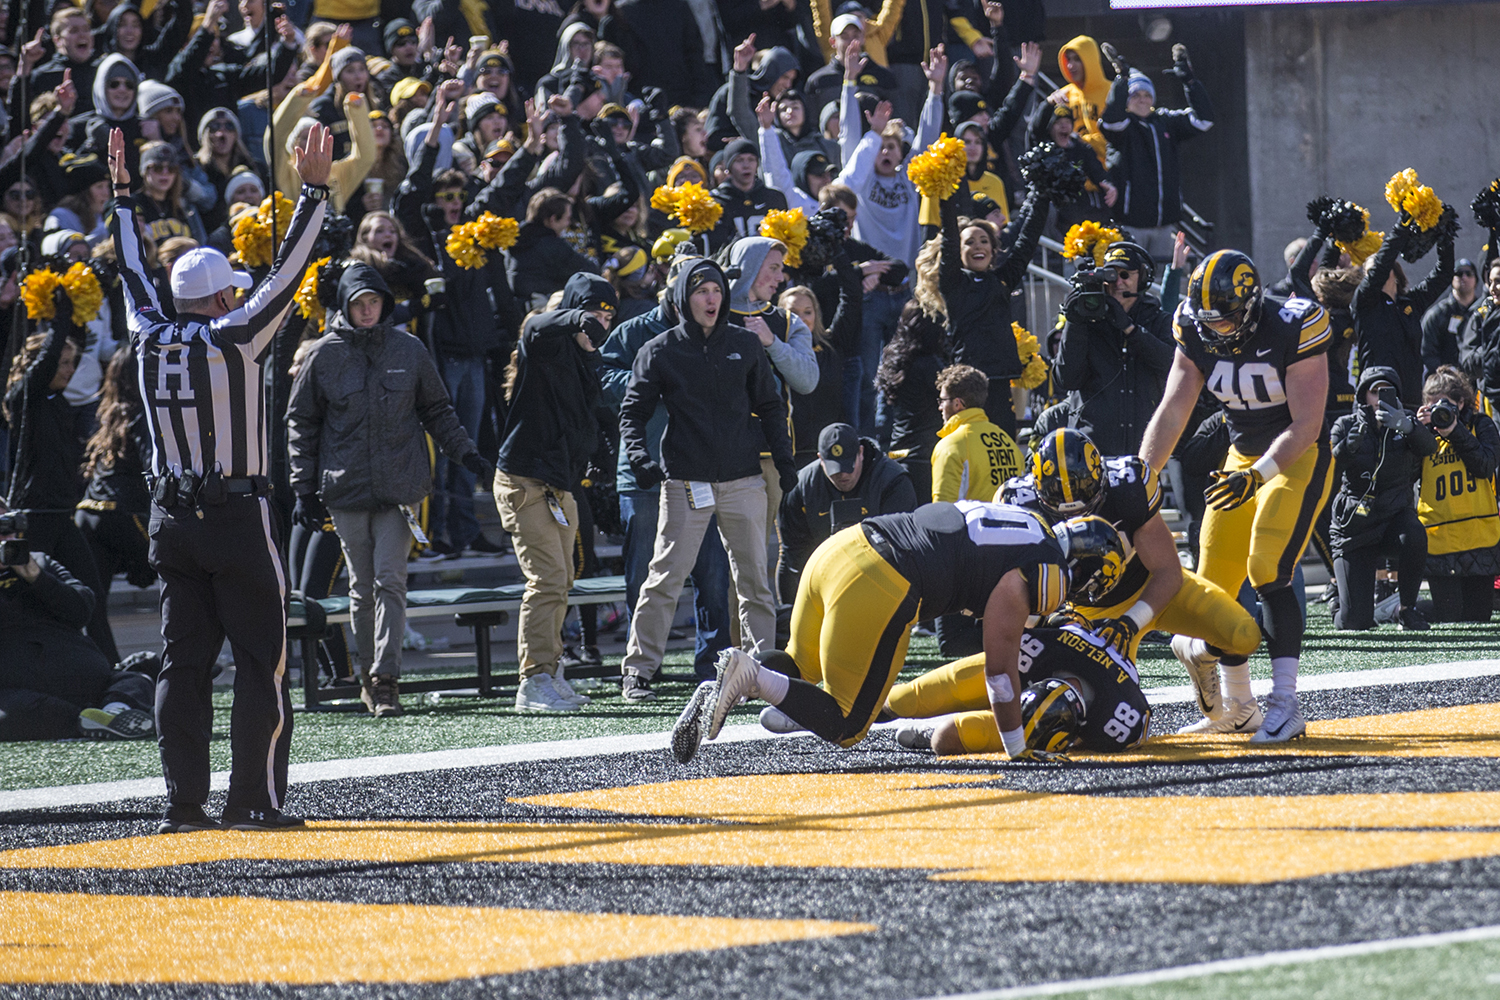 Iowa+defensive+end+Anthony+Nelson+recovers+a+fumble+in+the+end+zone+for+a+touchdown+during+a+football+game+between+Iowa+and+Maryland+in+Kinnick+Stadium+on+Saturday%2C+October+20%2C+2018.+The+Hawkeyes+defeated+the+Terrapins%2C+23-0.+